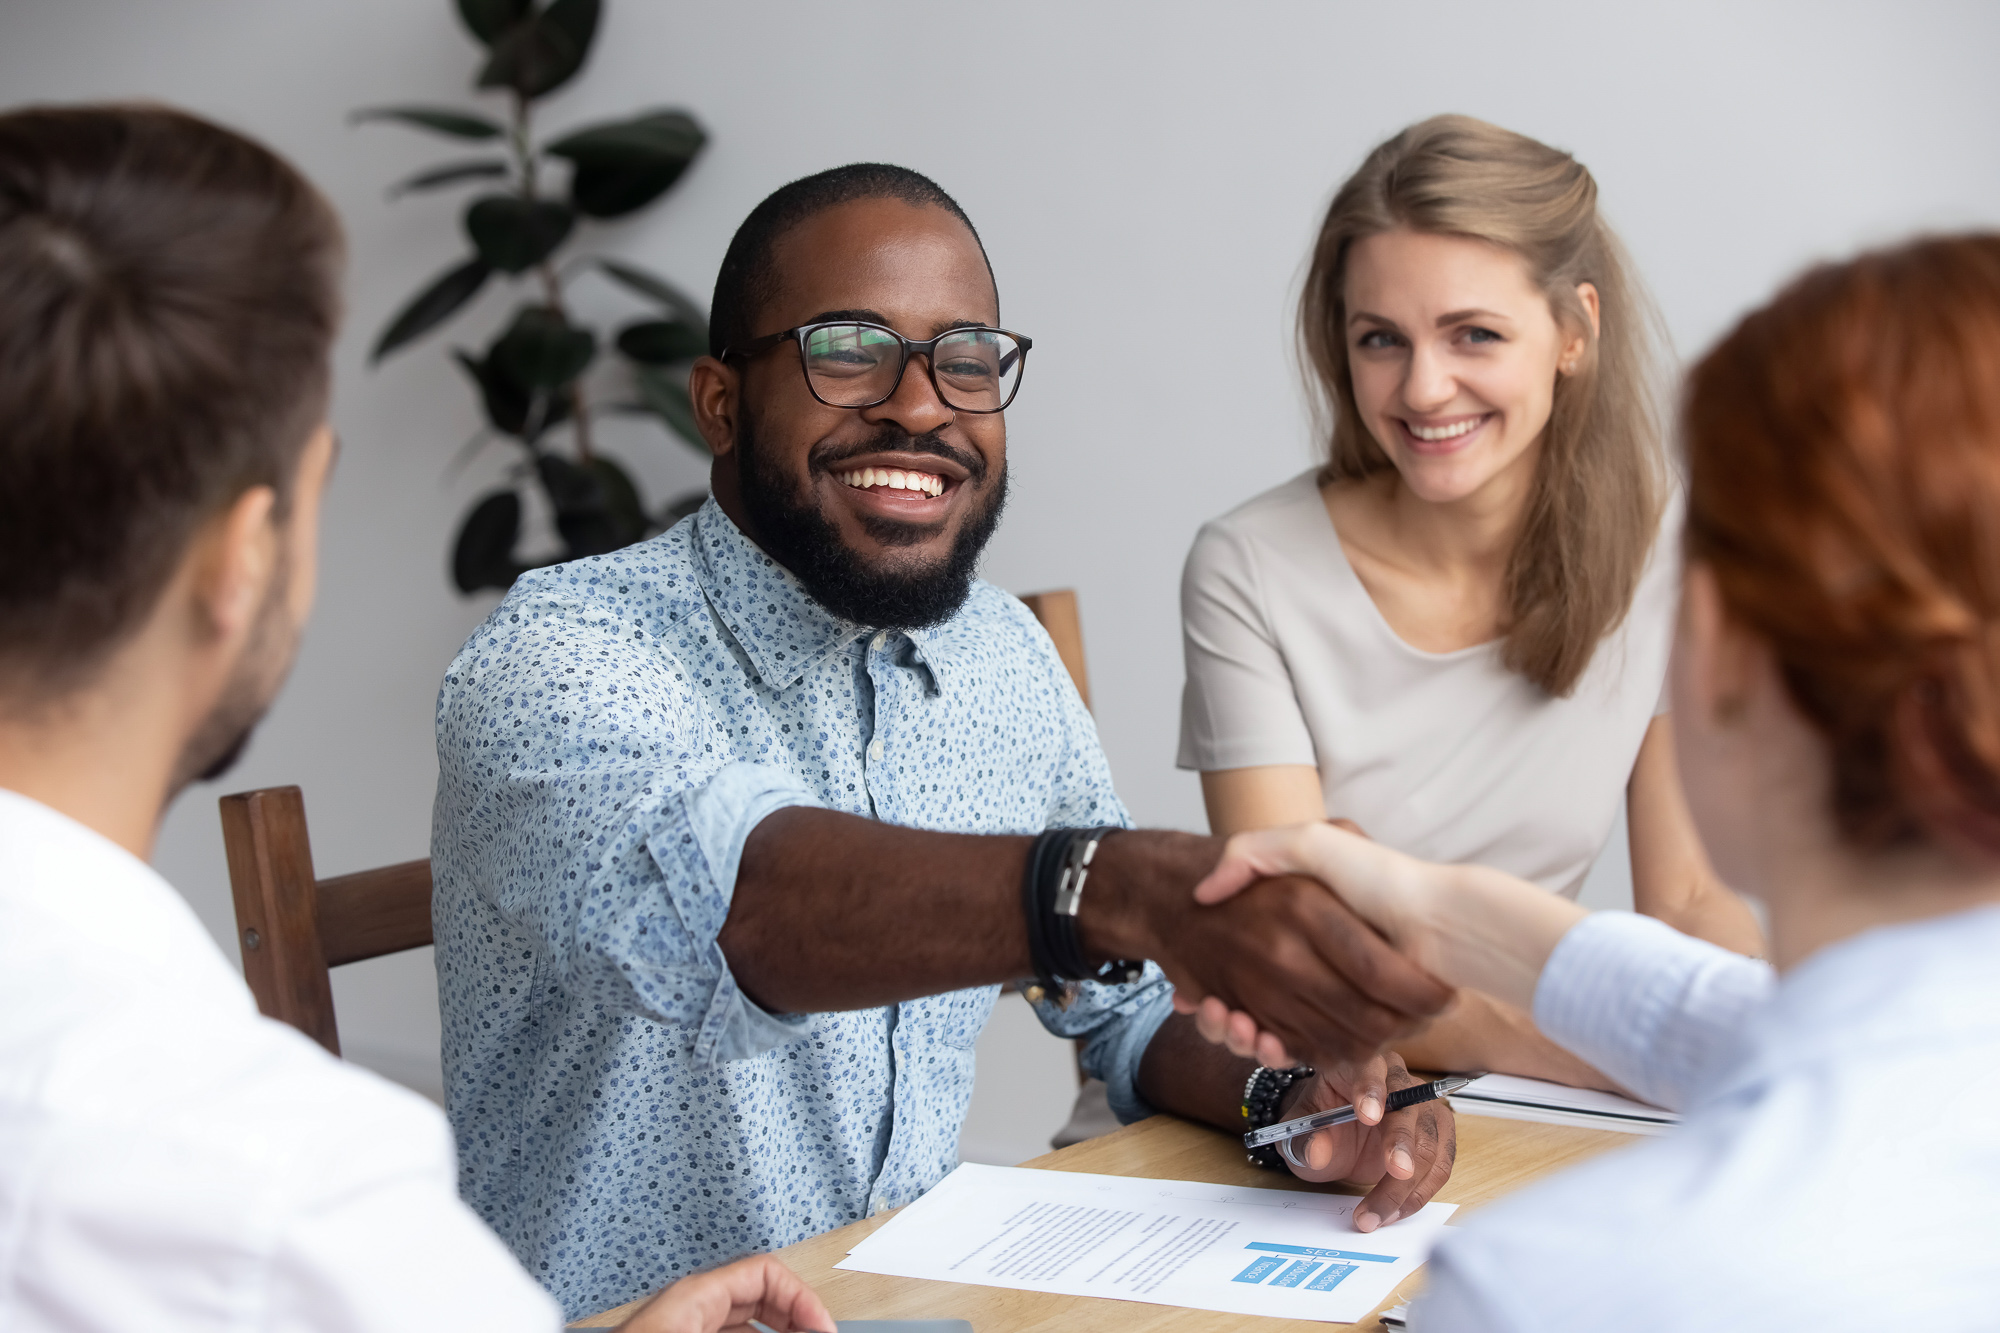 People shaking hands during a business meeting